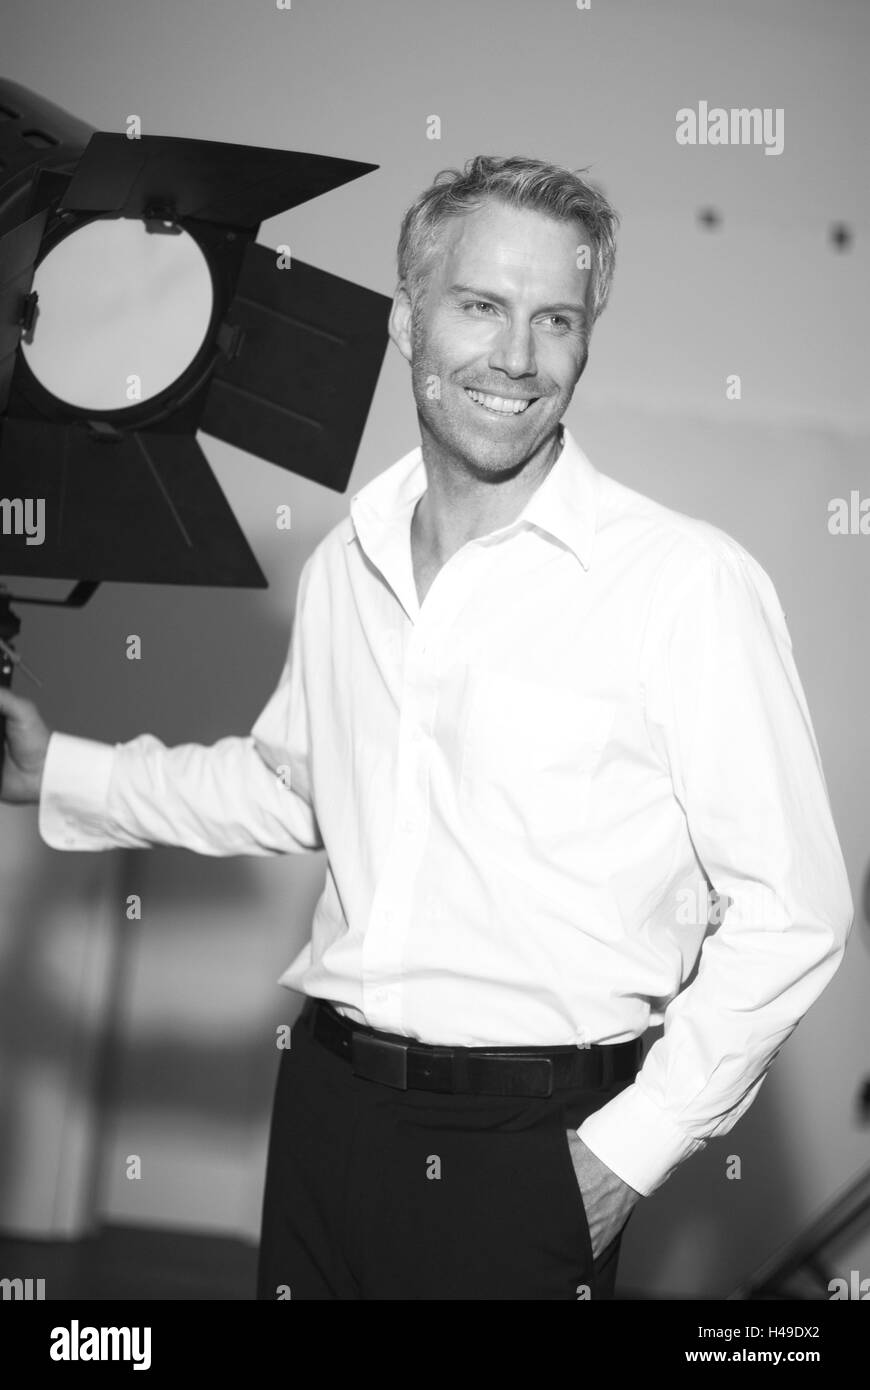 Man, middle age, studio lamp, b/w, , - Stock Image